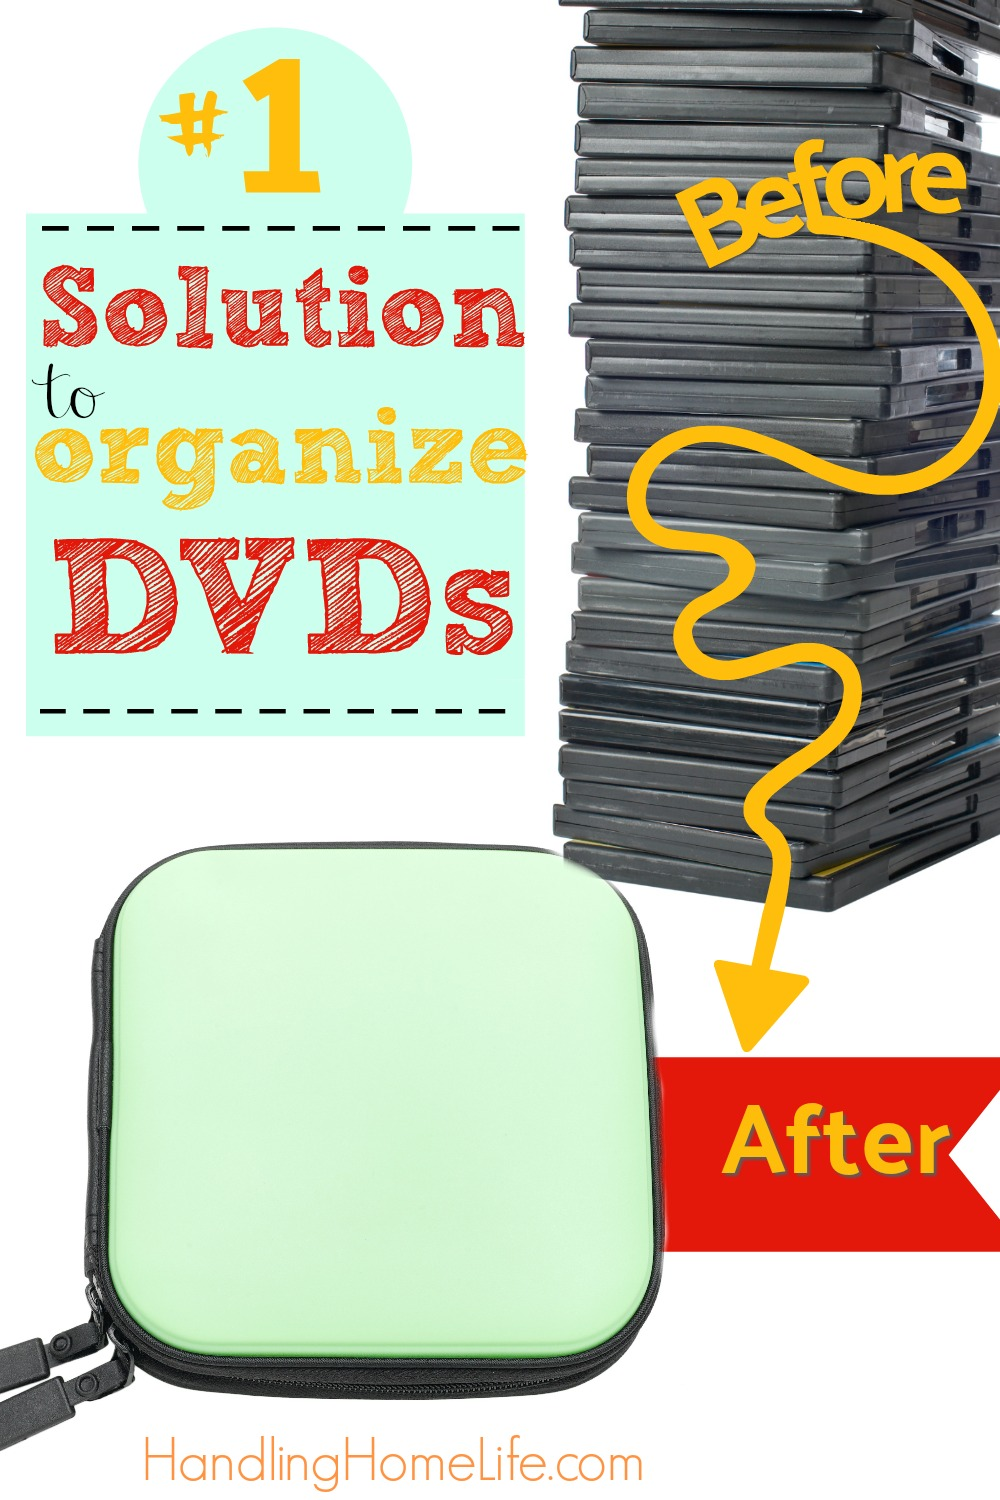 Stack of DVDs and a zippered DVD case: how to organize dvds